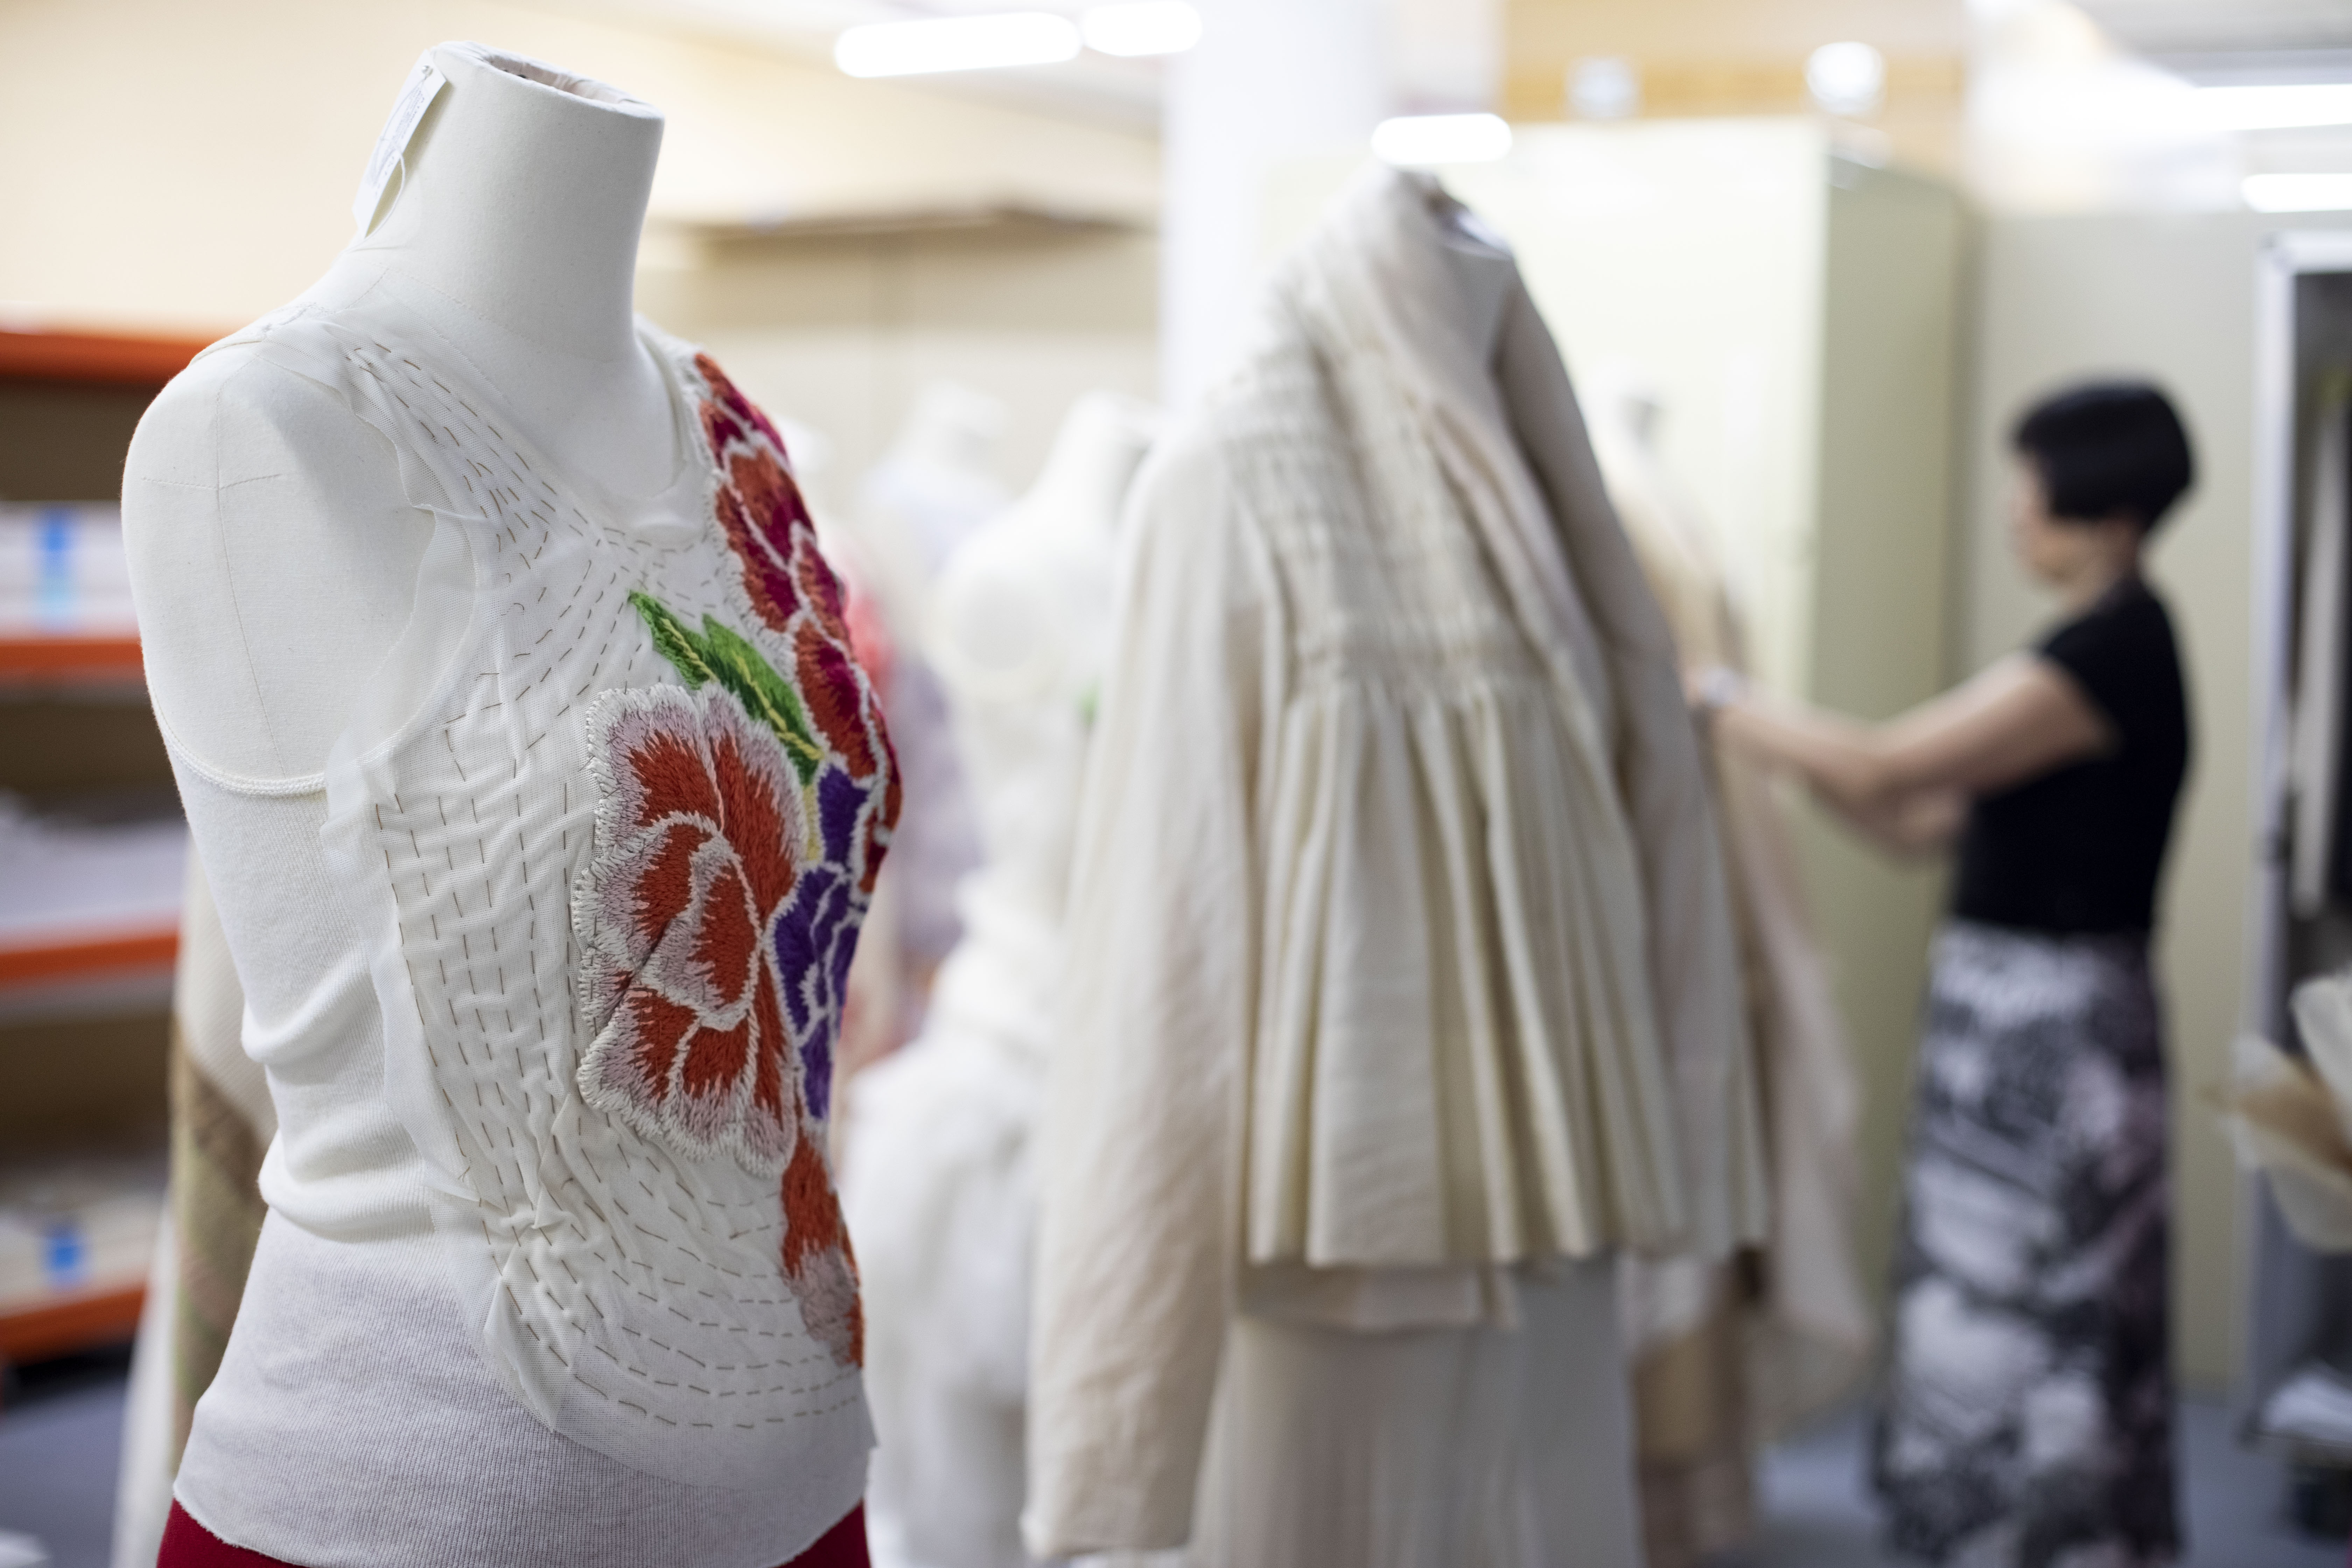 A white sleeveless top with floral applique pattern on a mannequin. In the background, out of focus, are a second dressed mannequin, and beyond that, a woman dressing a third mannequin.